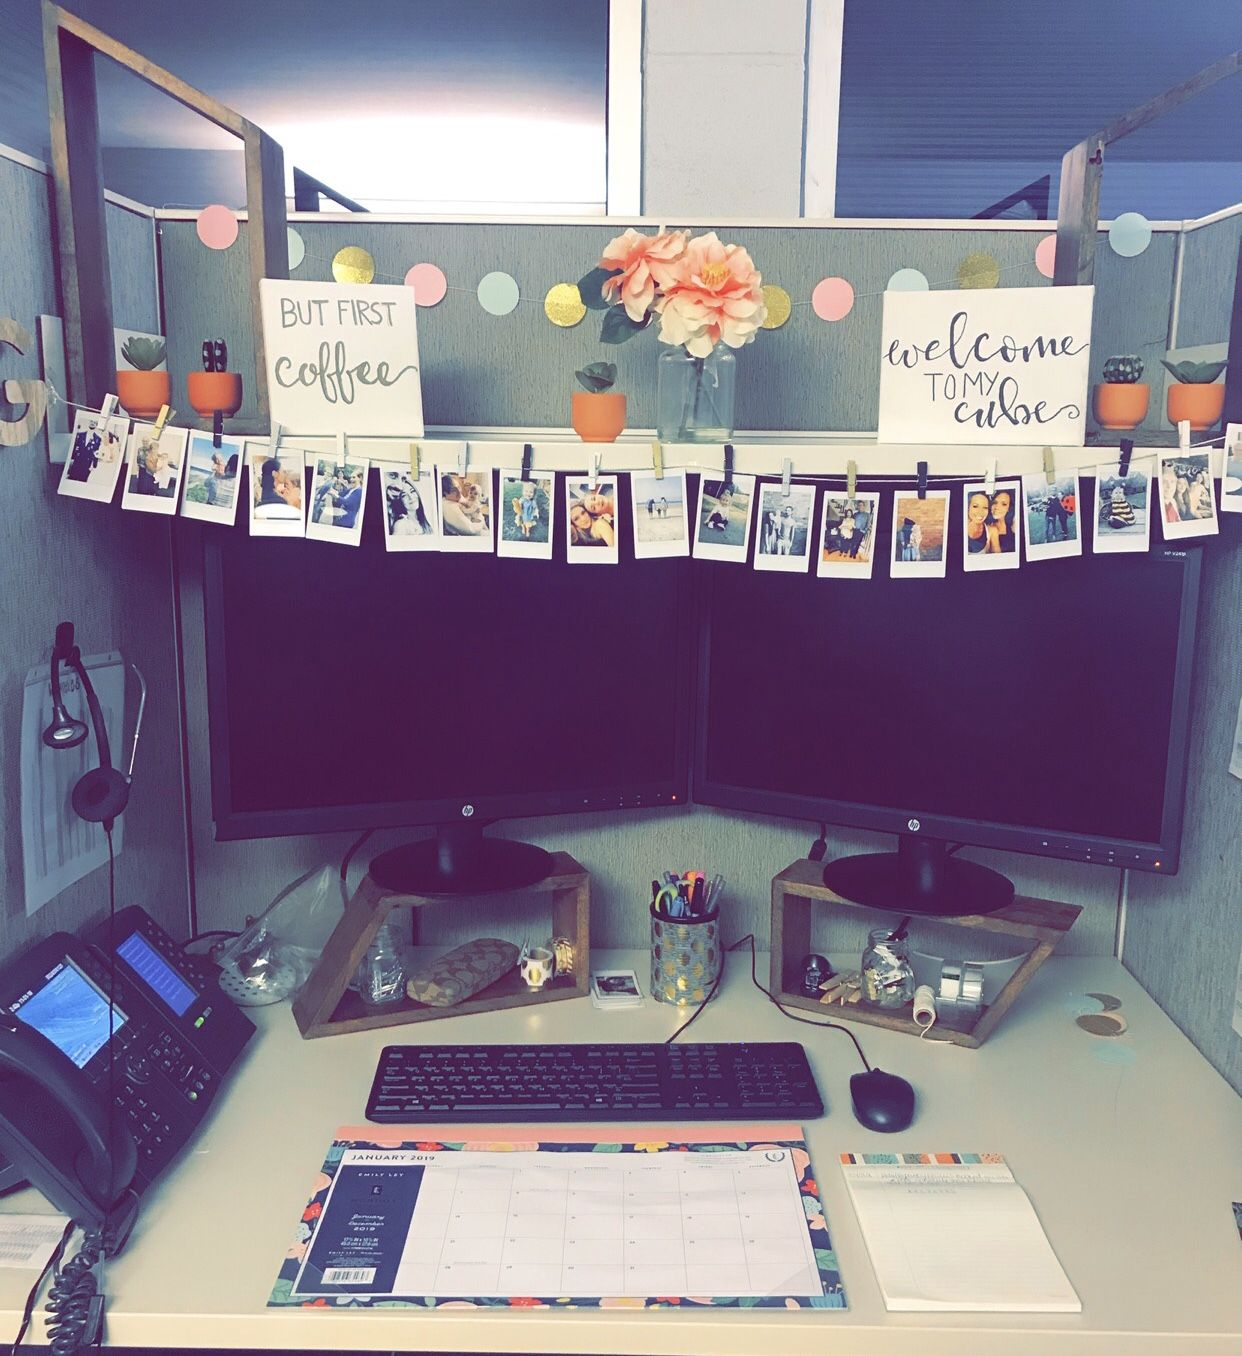 My Happy Little Work Cube Cute Cubicle Decor Ideas Cubicle Decor Office Work Cubicle Decor Cubicle Decor